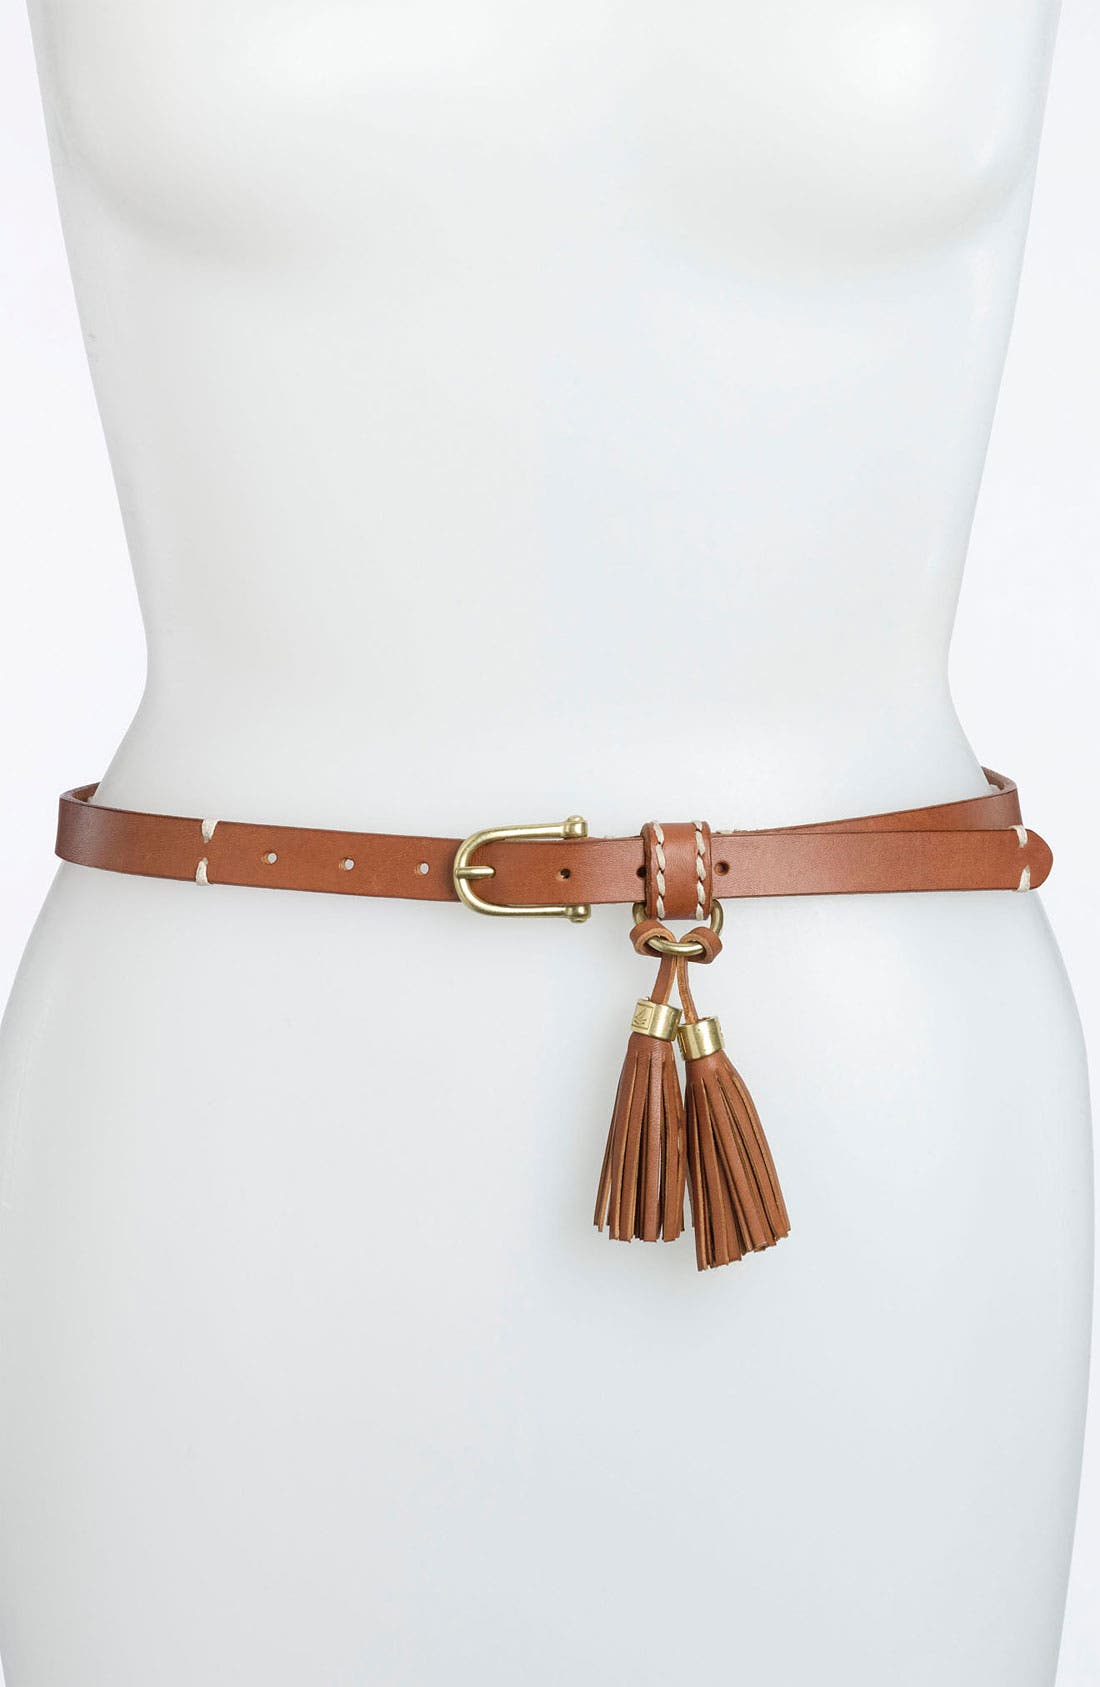 Main Image - Sperry Top-Sider® Leather Belt